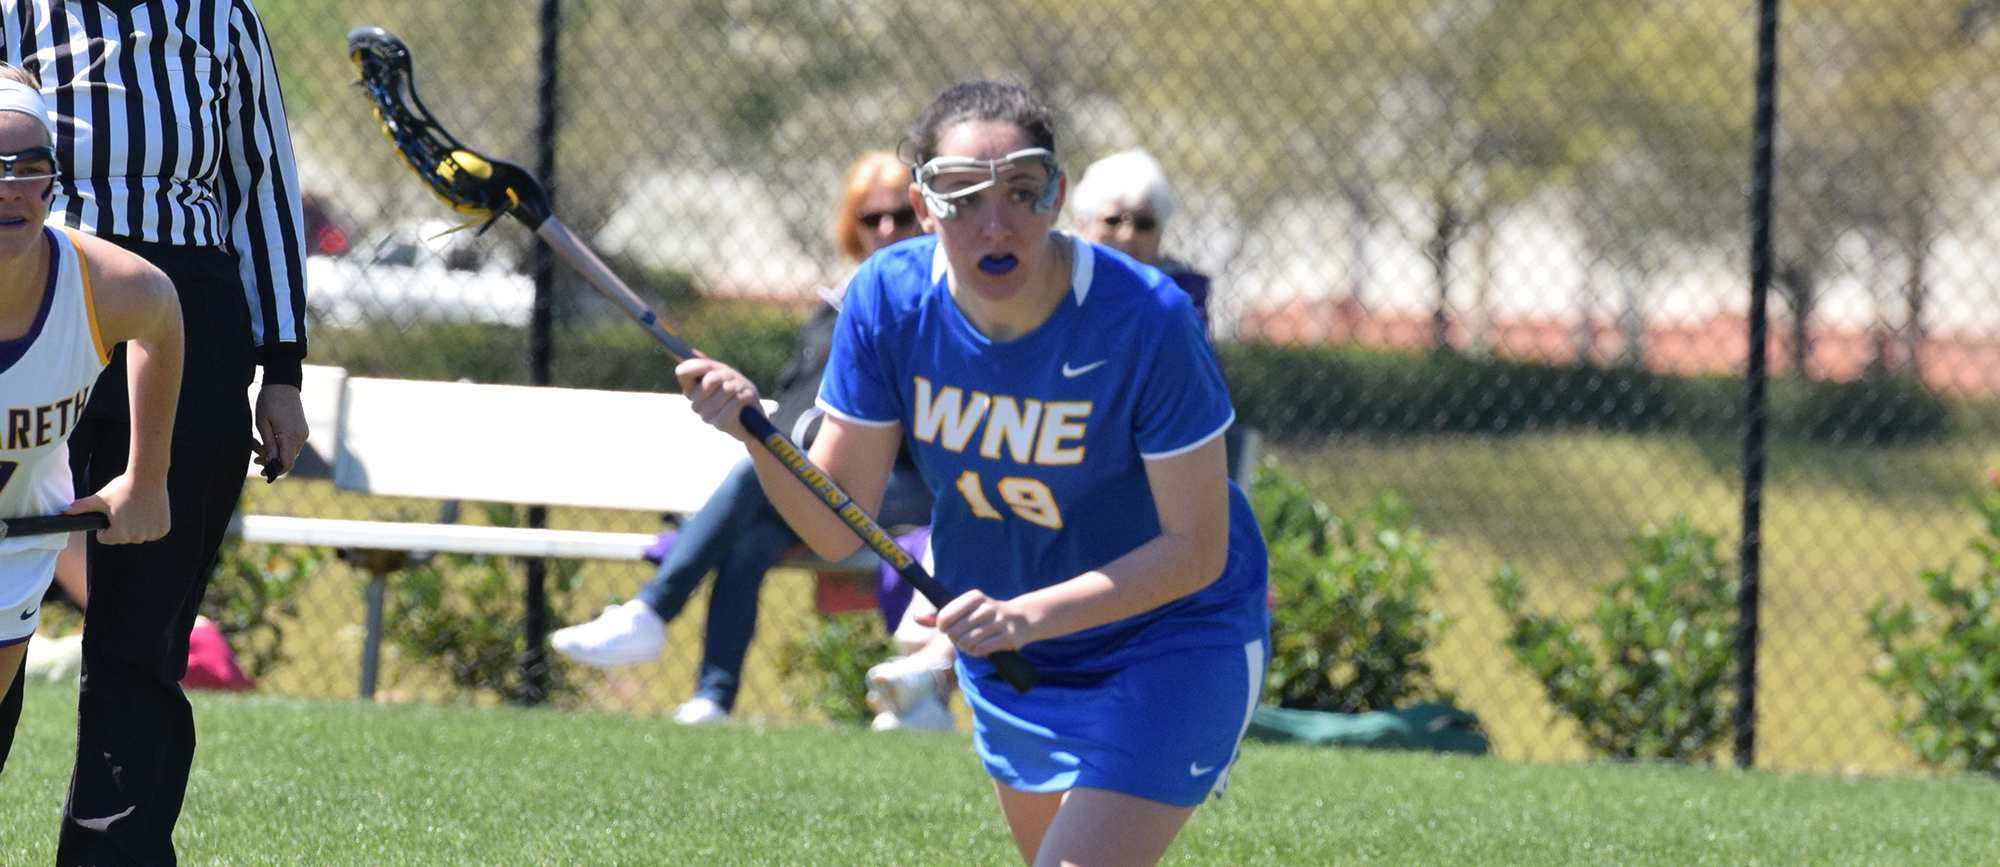 Junior Kristen Breen recorded a career-high seven points in Western New England's 21-8 win over Wentworth on Wednesday.